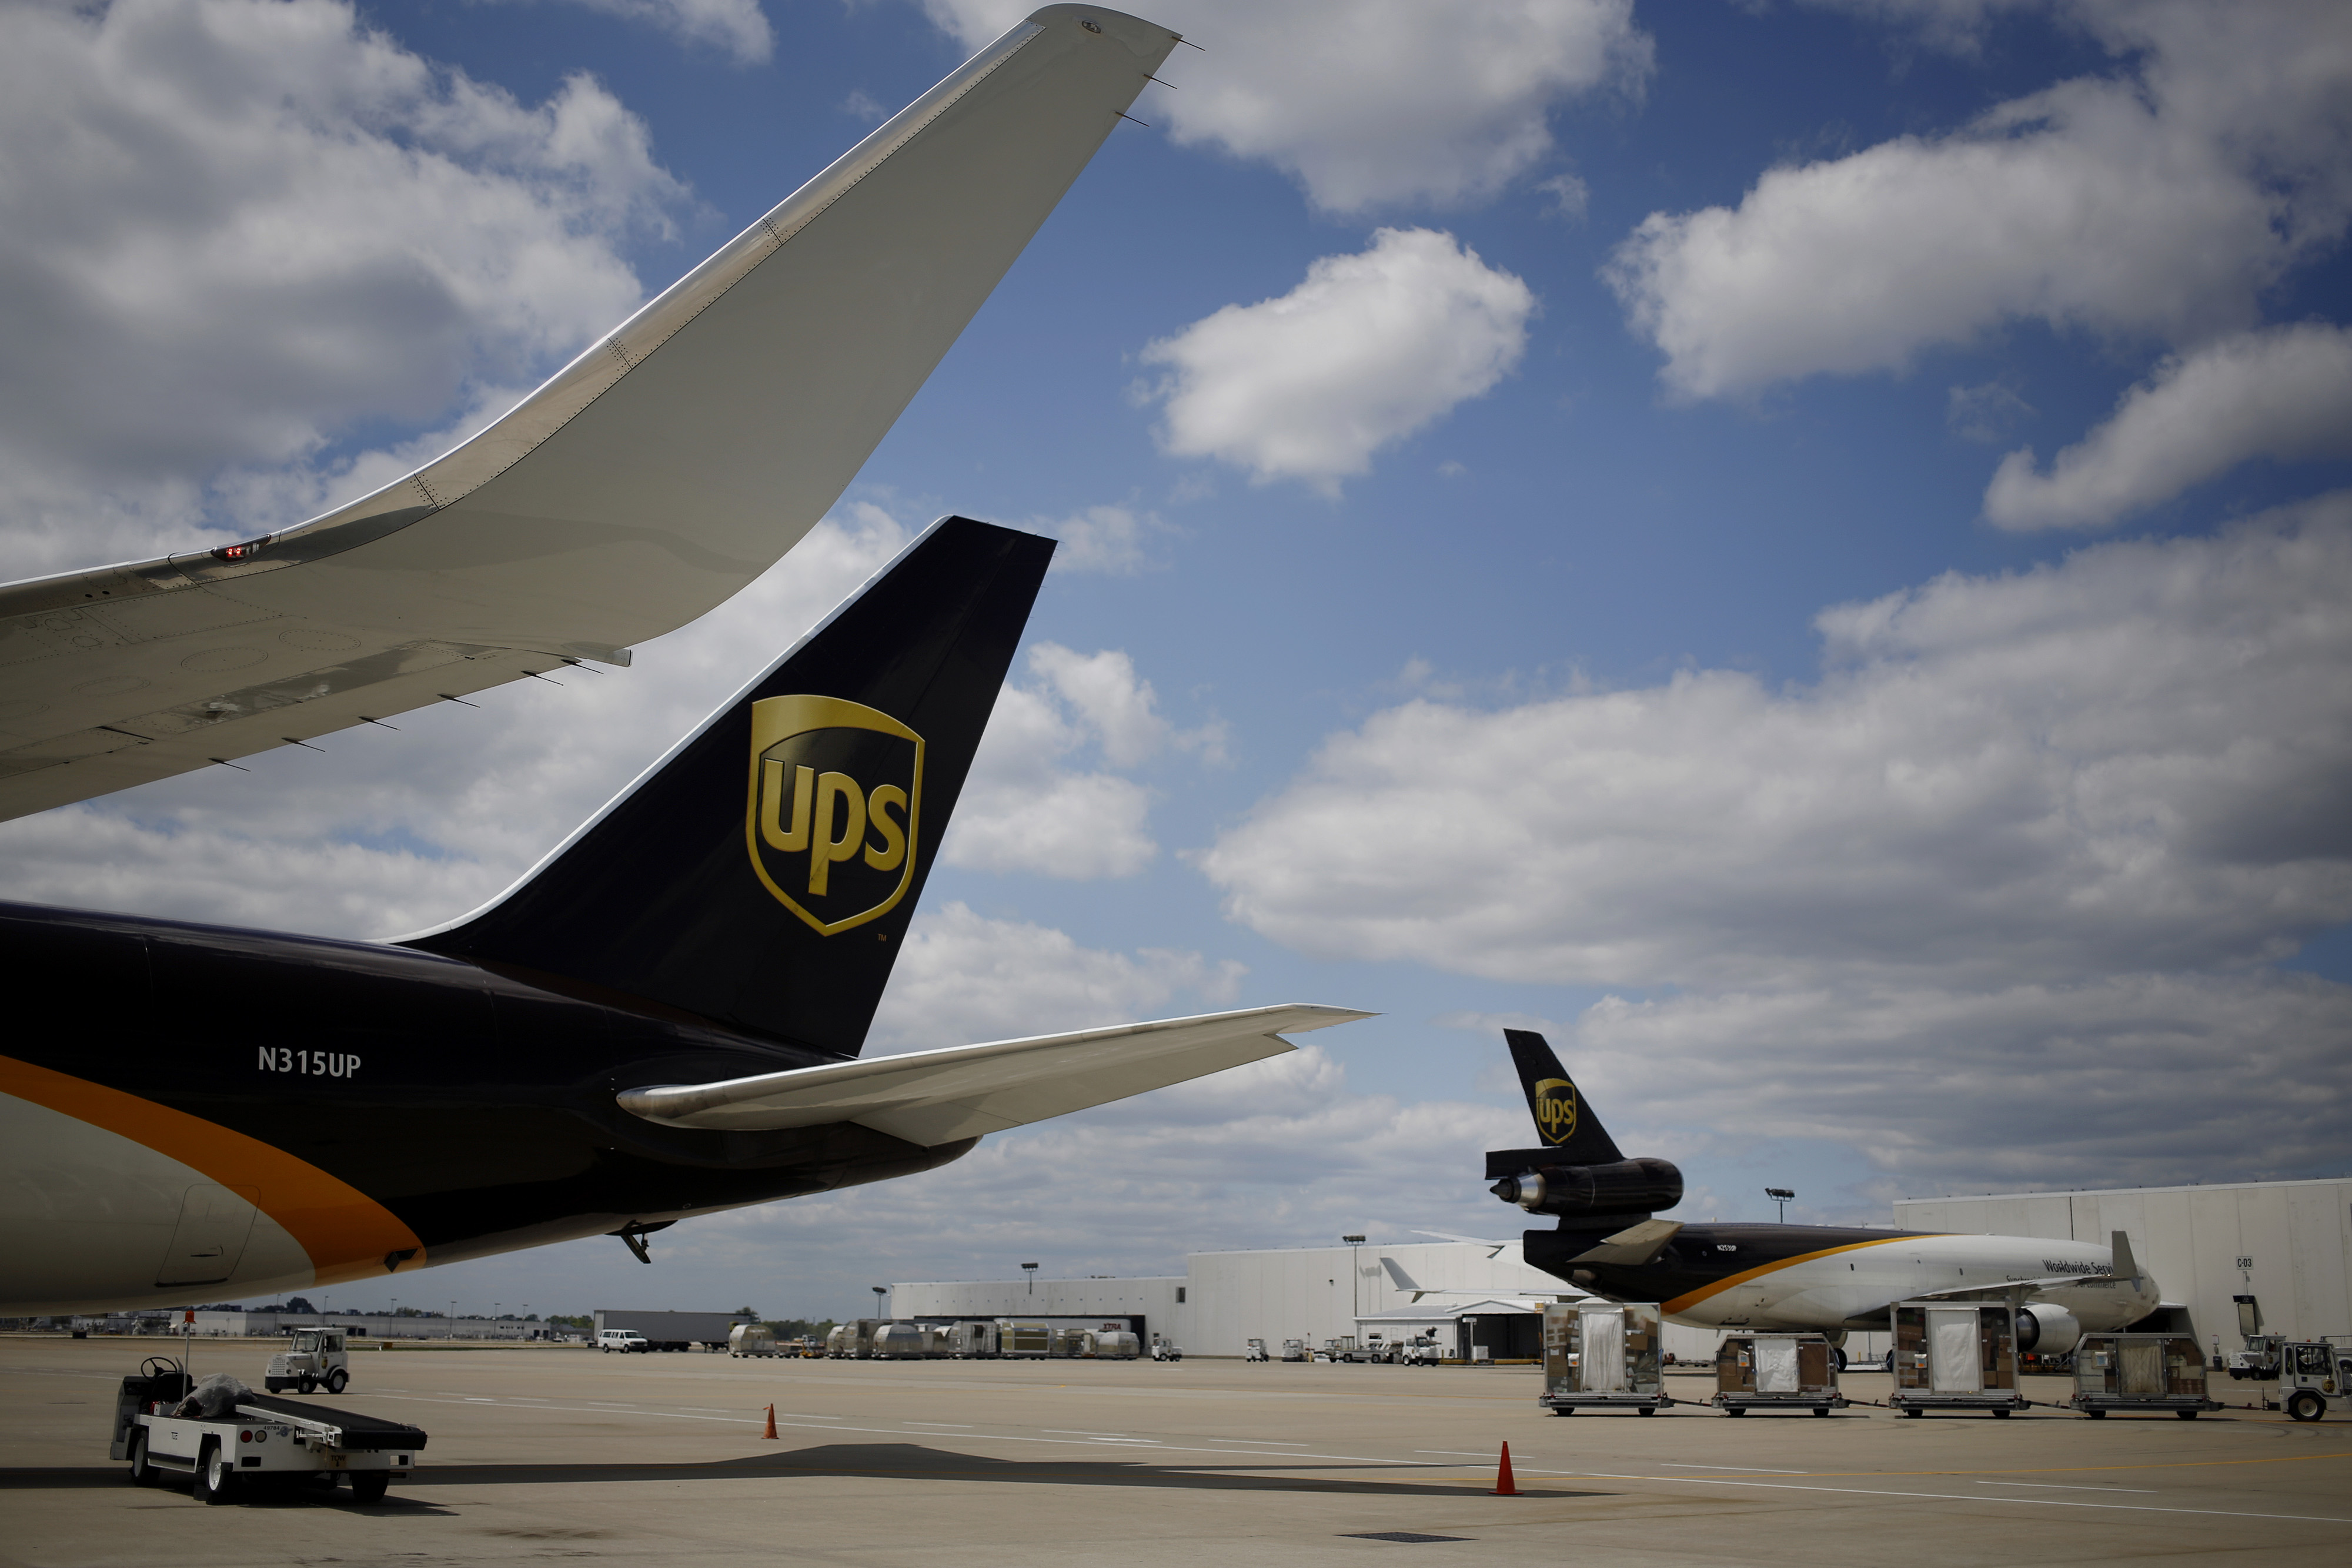 UPS jet freighters sit on the tarmac while being loaded with outbound packages during the afternoon sort at the UPS Worldport hub in Louisville, Kentucky on July 24, 2014.